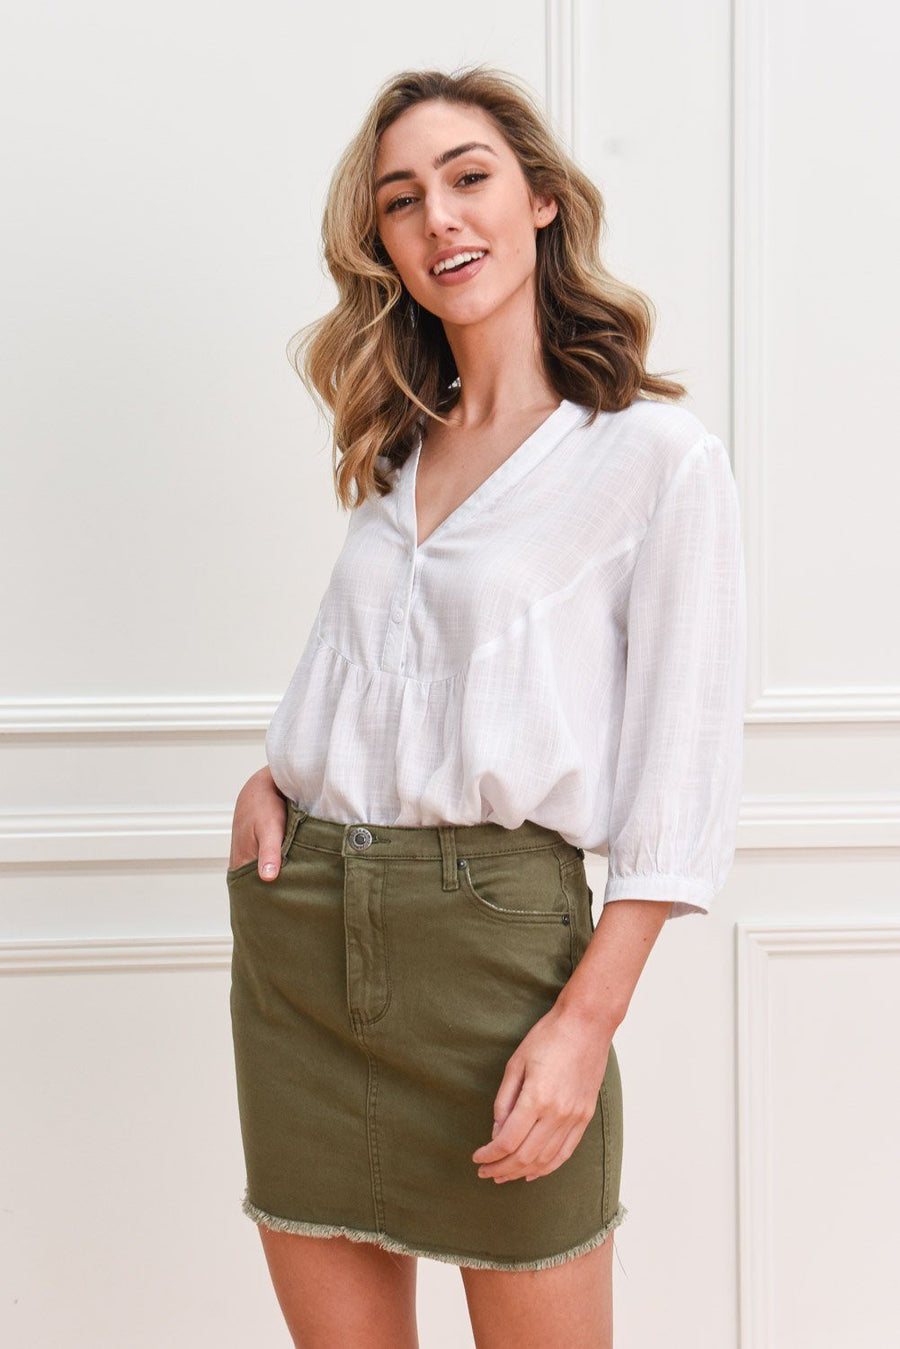 Revi Denimn Skirt | Khaki Skirt Gray.Label